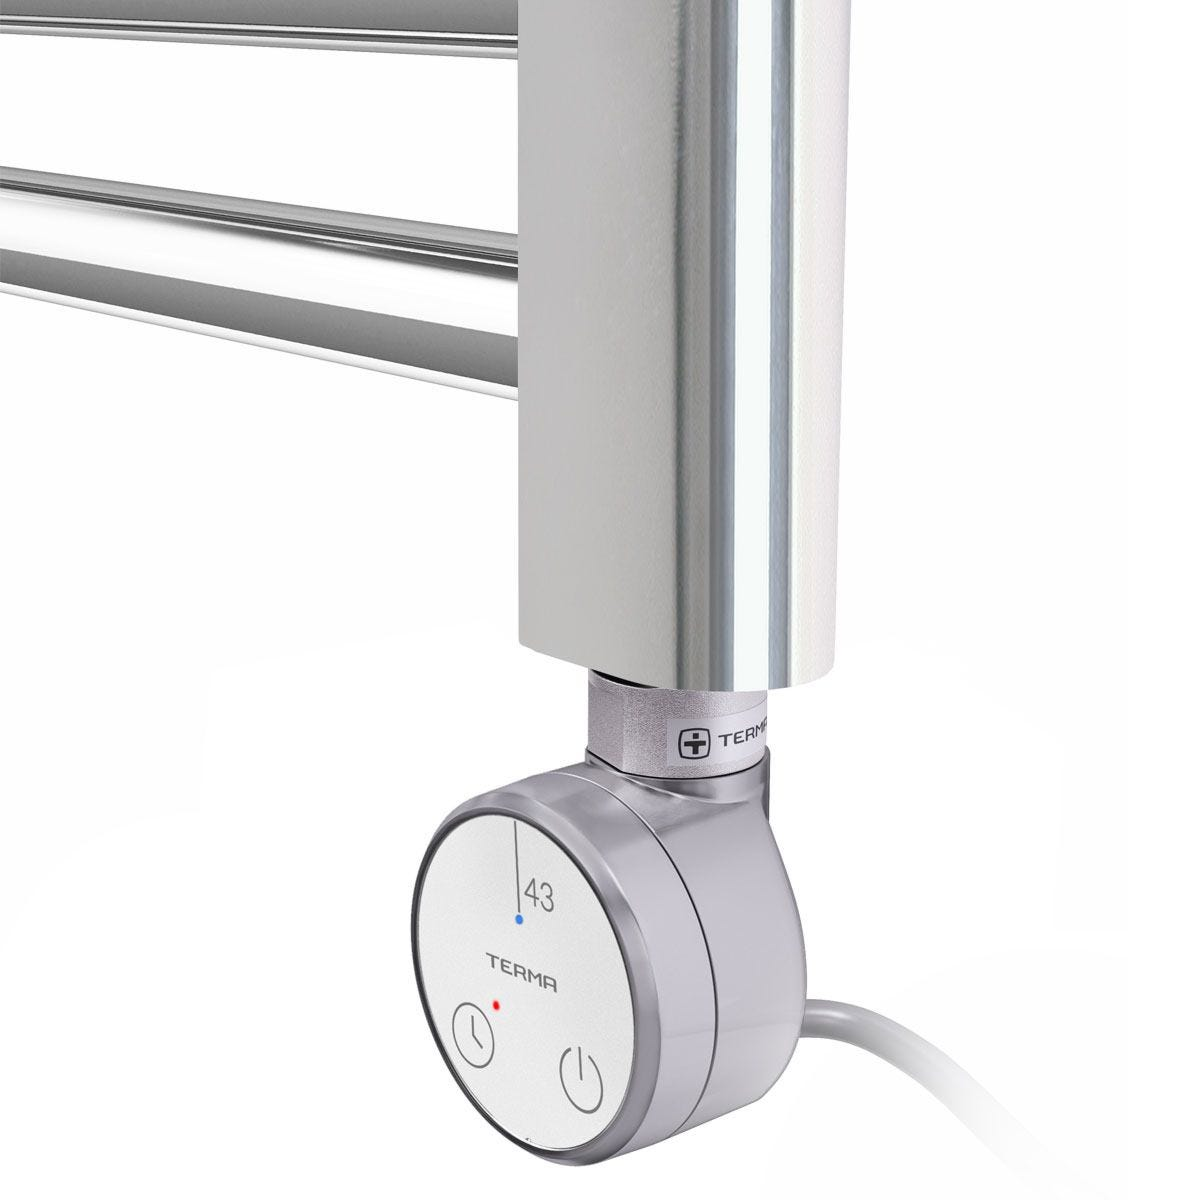 Terma Leo Heated Towel Rail with 43D Thermostatic Element - 800 x 500mm 200W